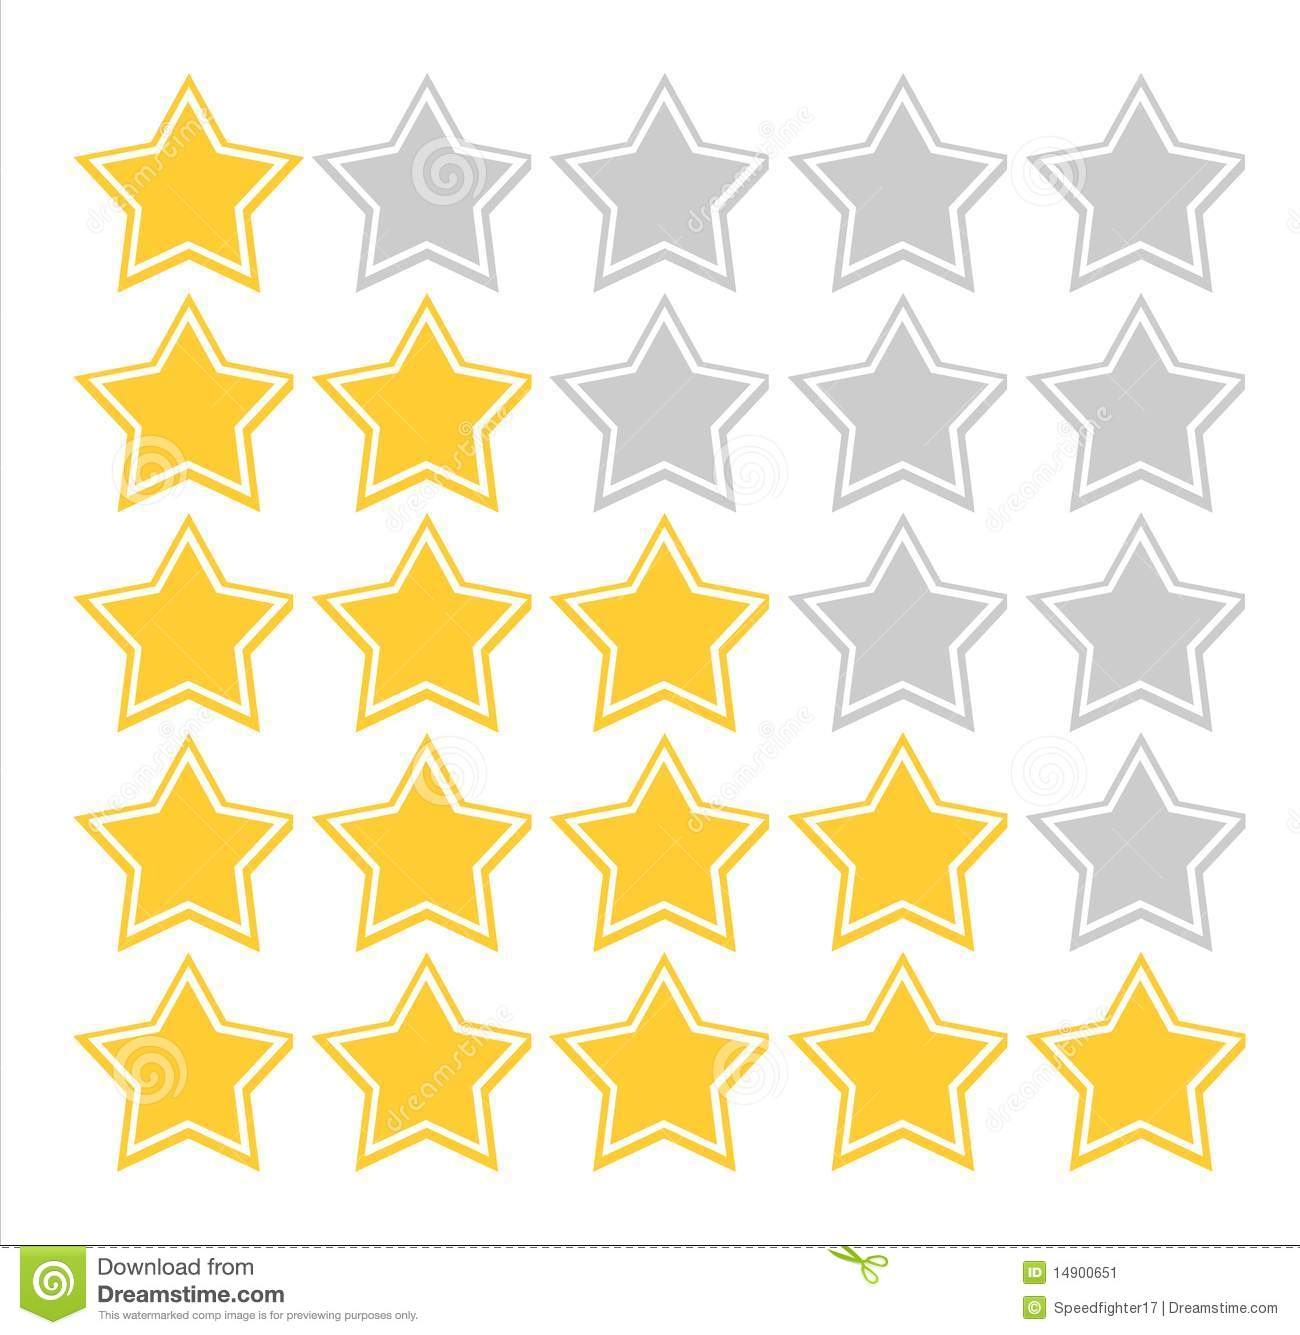 Star Quality Rating Stock Illustration. Illustration Of